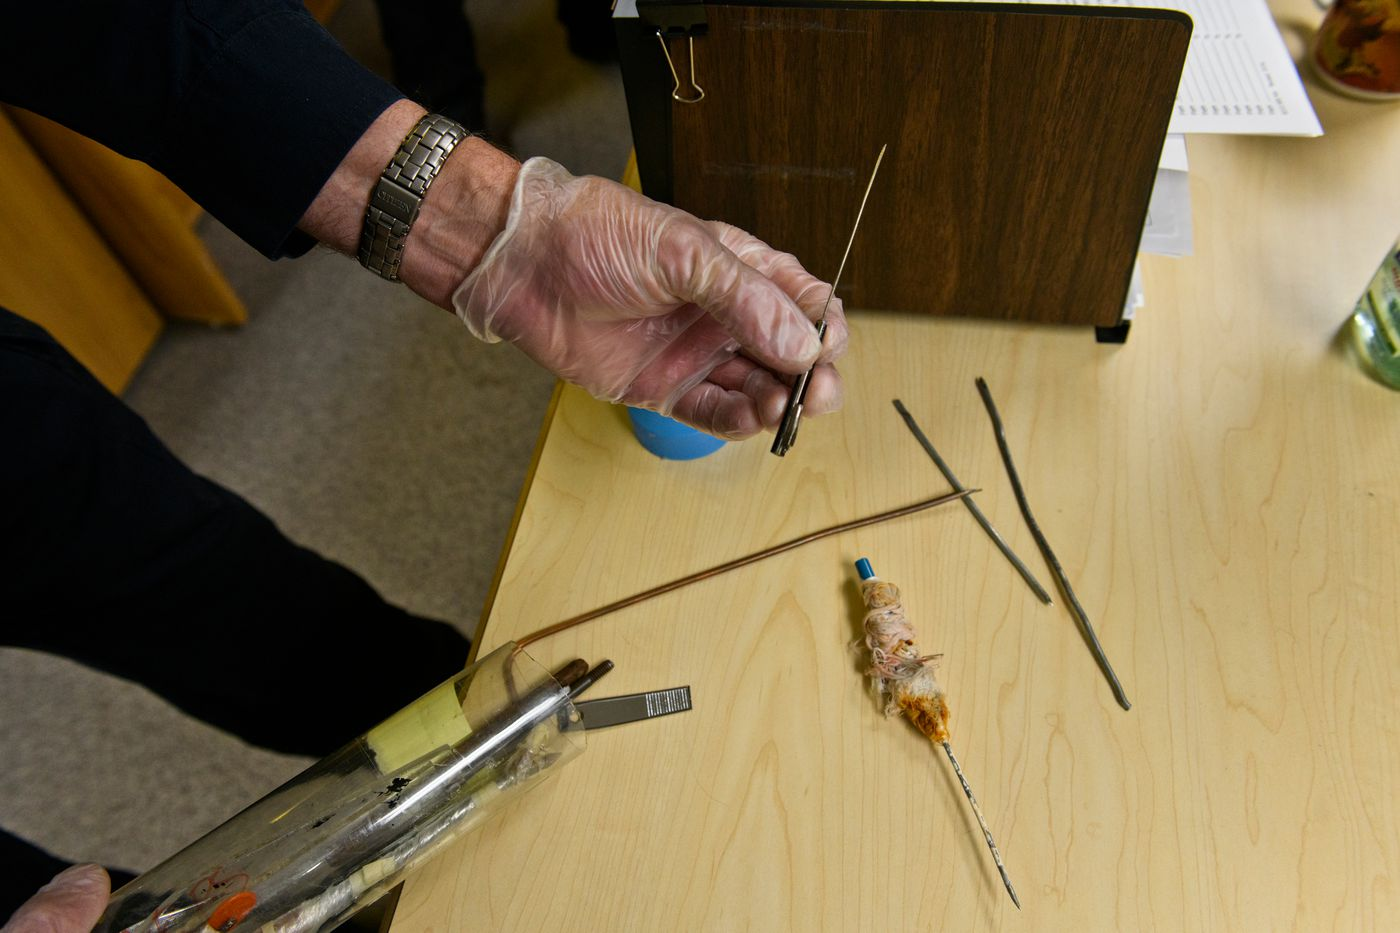 Security Sgt. Paul Wiest shows some of the shanks that have been confiscated at Spring Creek Correctional Center. The security office is tasked with keeping drugs out of Spring Creek and violence in it to a minimum, Wiest said. (Marc Lester / ADN)